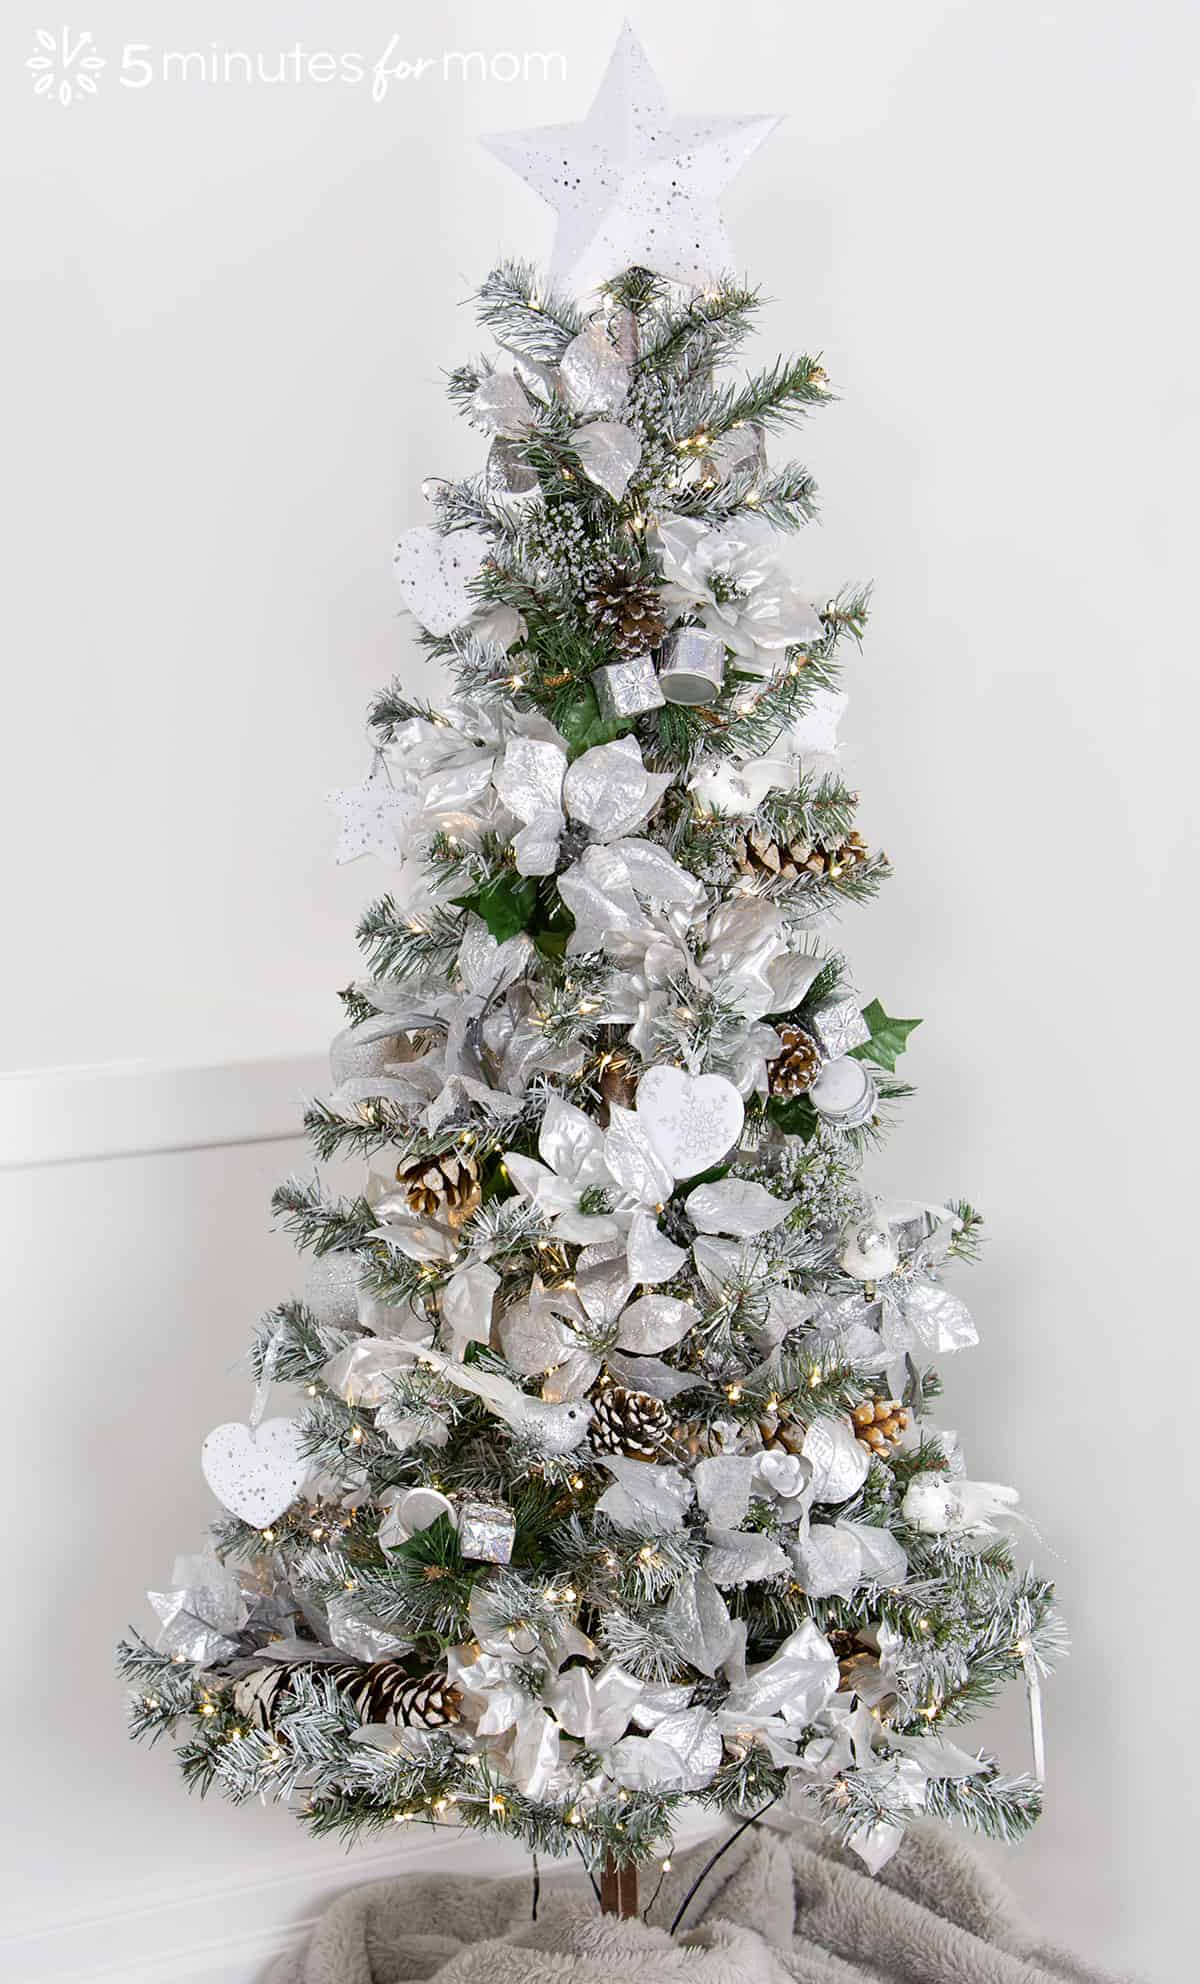 White Christmas Tree With Silver Decorations  from www.5minutesformom.com